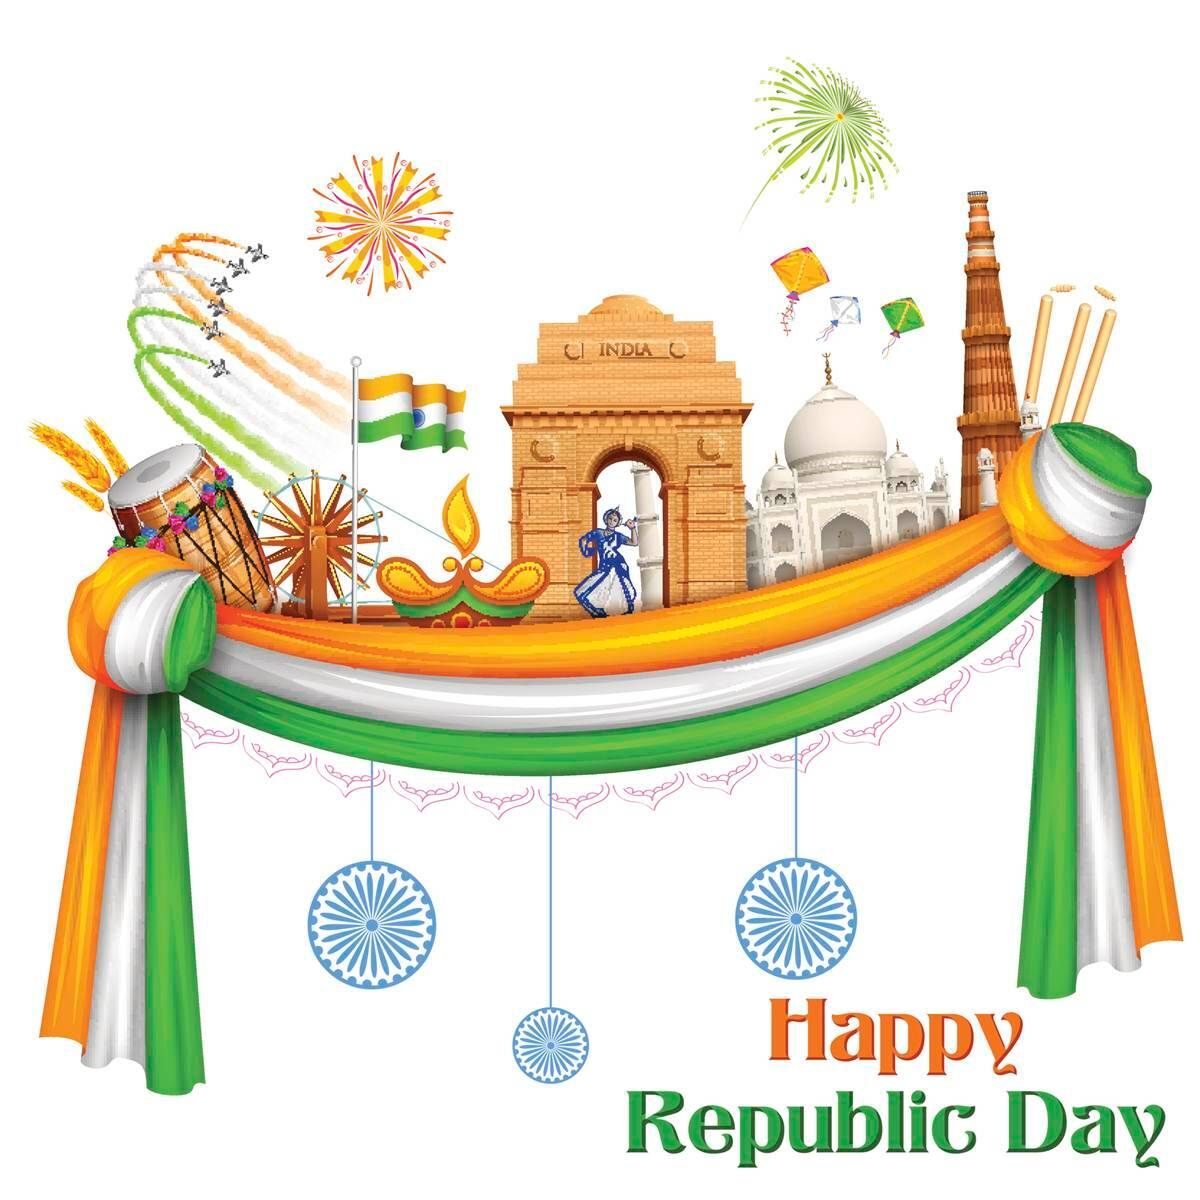 Happy Republic Day 2017 Wishes Sms Quotes Facebook Whatsapp Status Messages Greetings For Loved Ones Lifestyle News The Indian Express Happy republic day images 2021 muslim